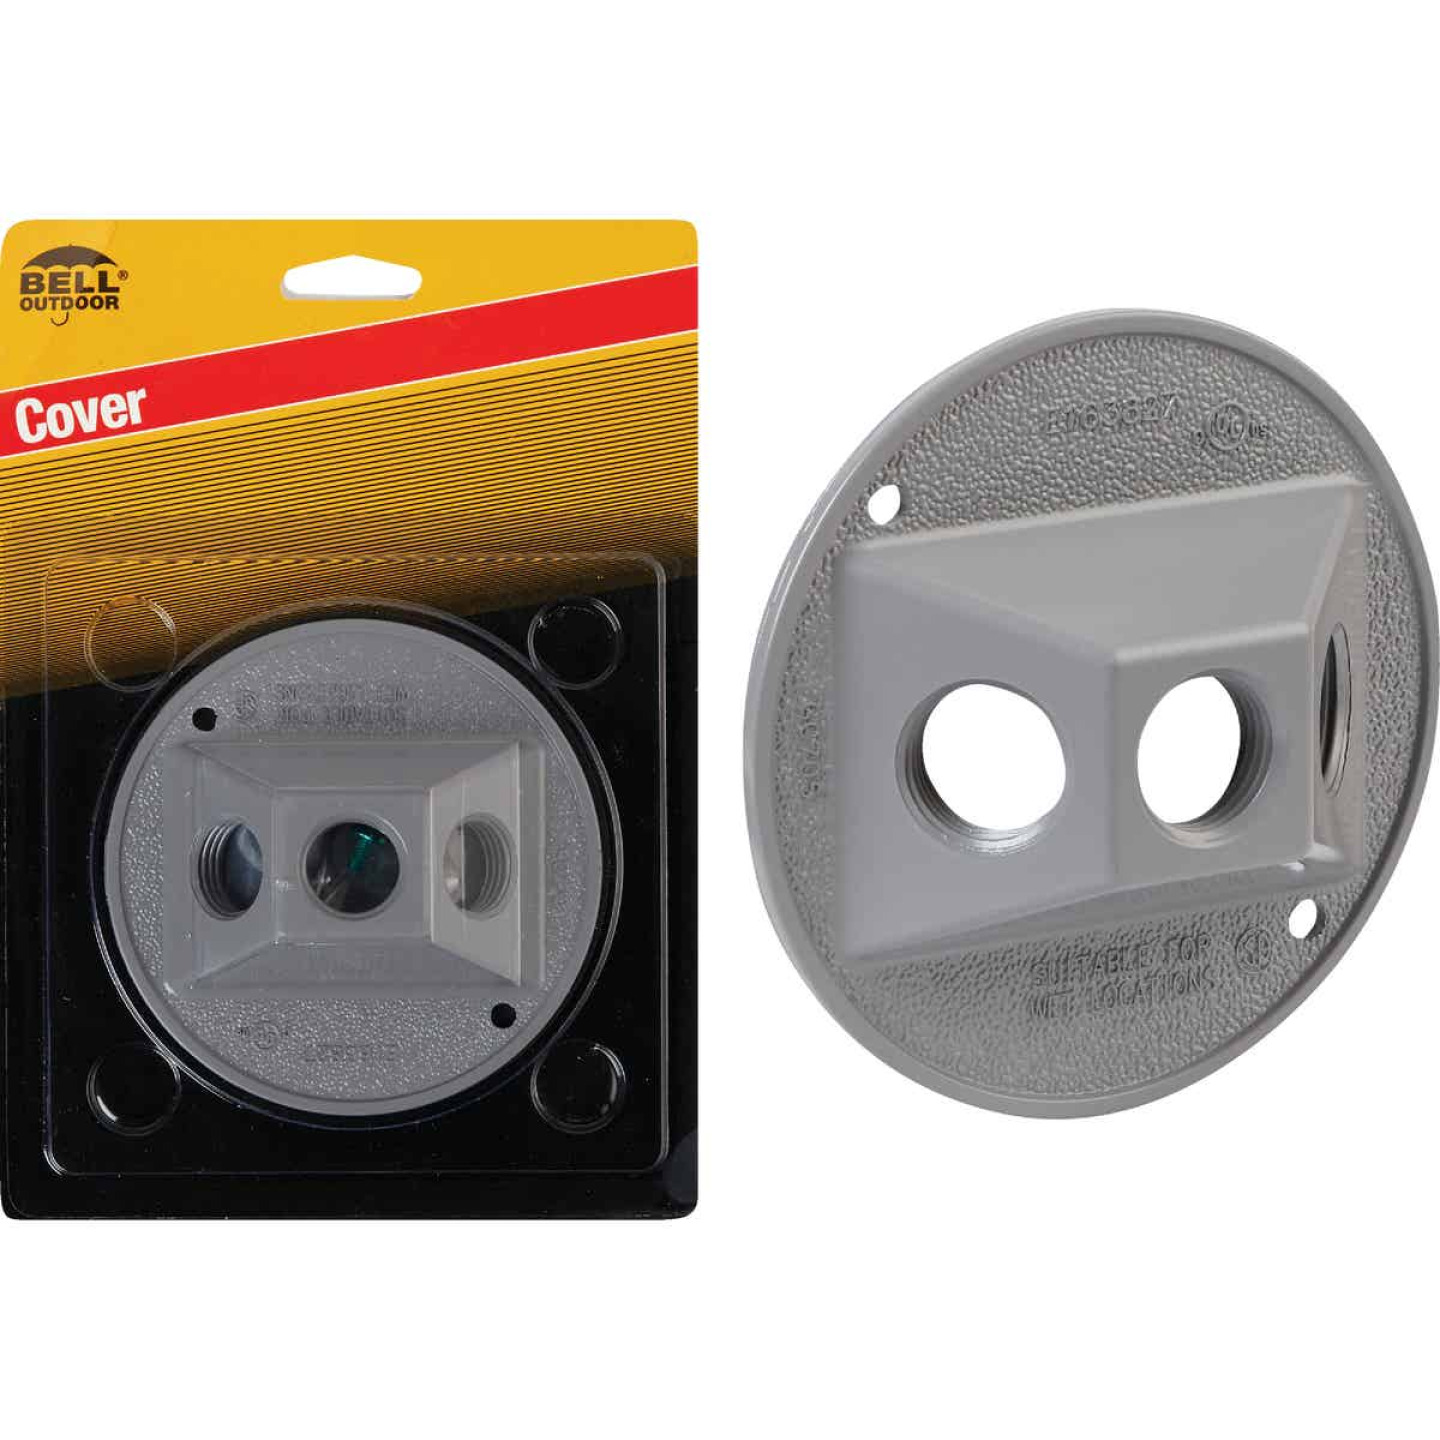 Bell 3-Outlet Round Zinc Gray Cluster Weatherproof Outdoor Box Cover, Carded Image 1